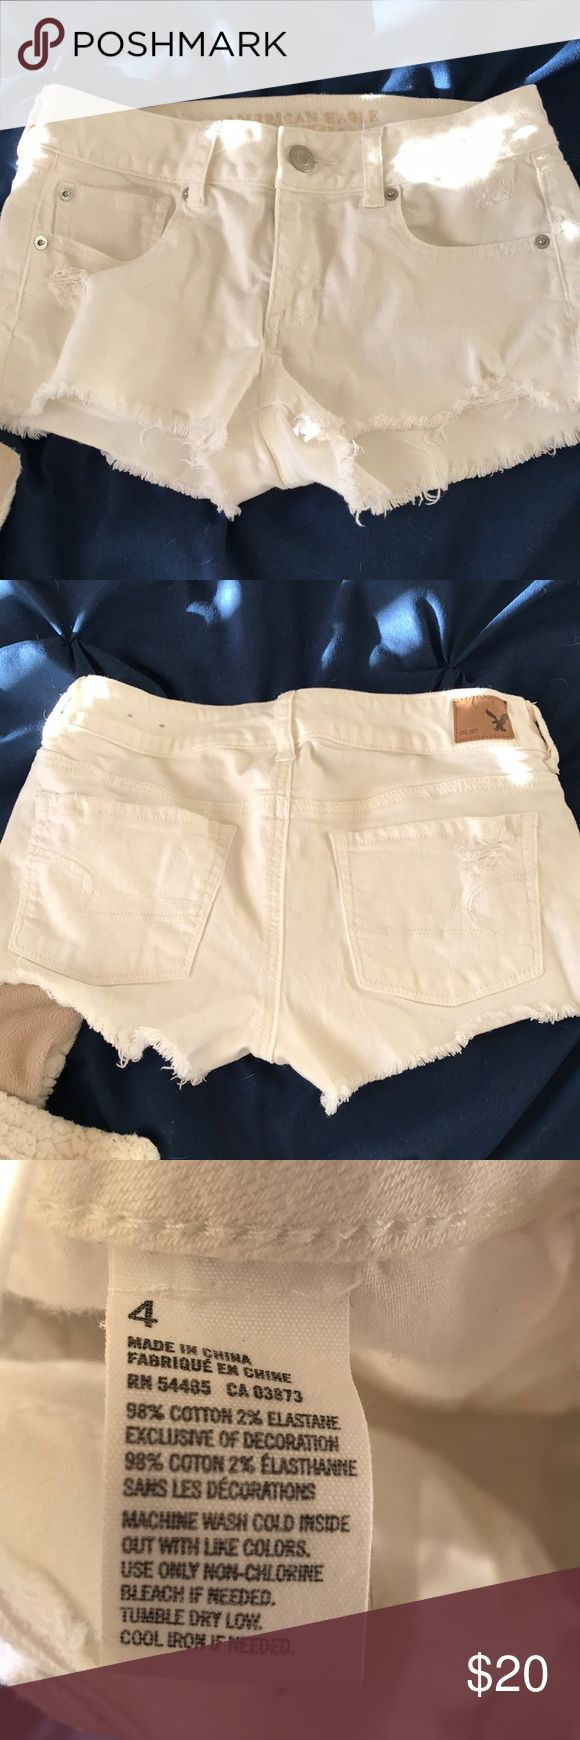 American eagle white jean shorts size 4 Only worn a few times, perfect for summer!! American Eagle Outfitters Shorts Jean Shorts